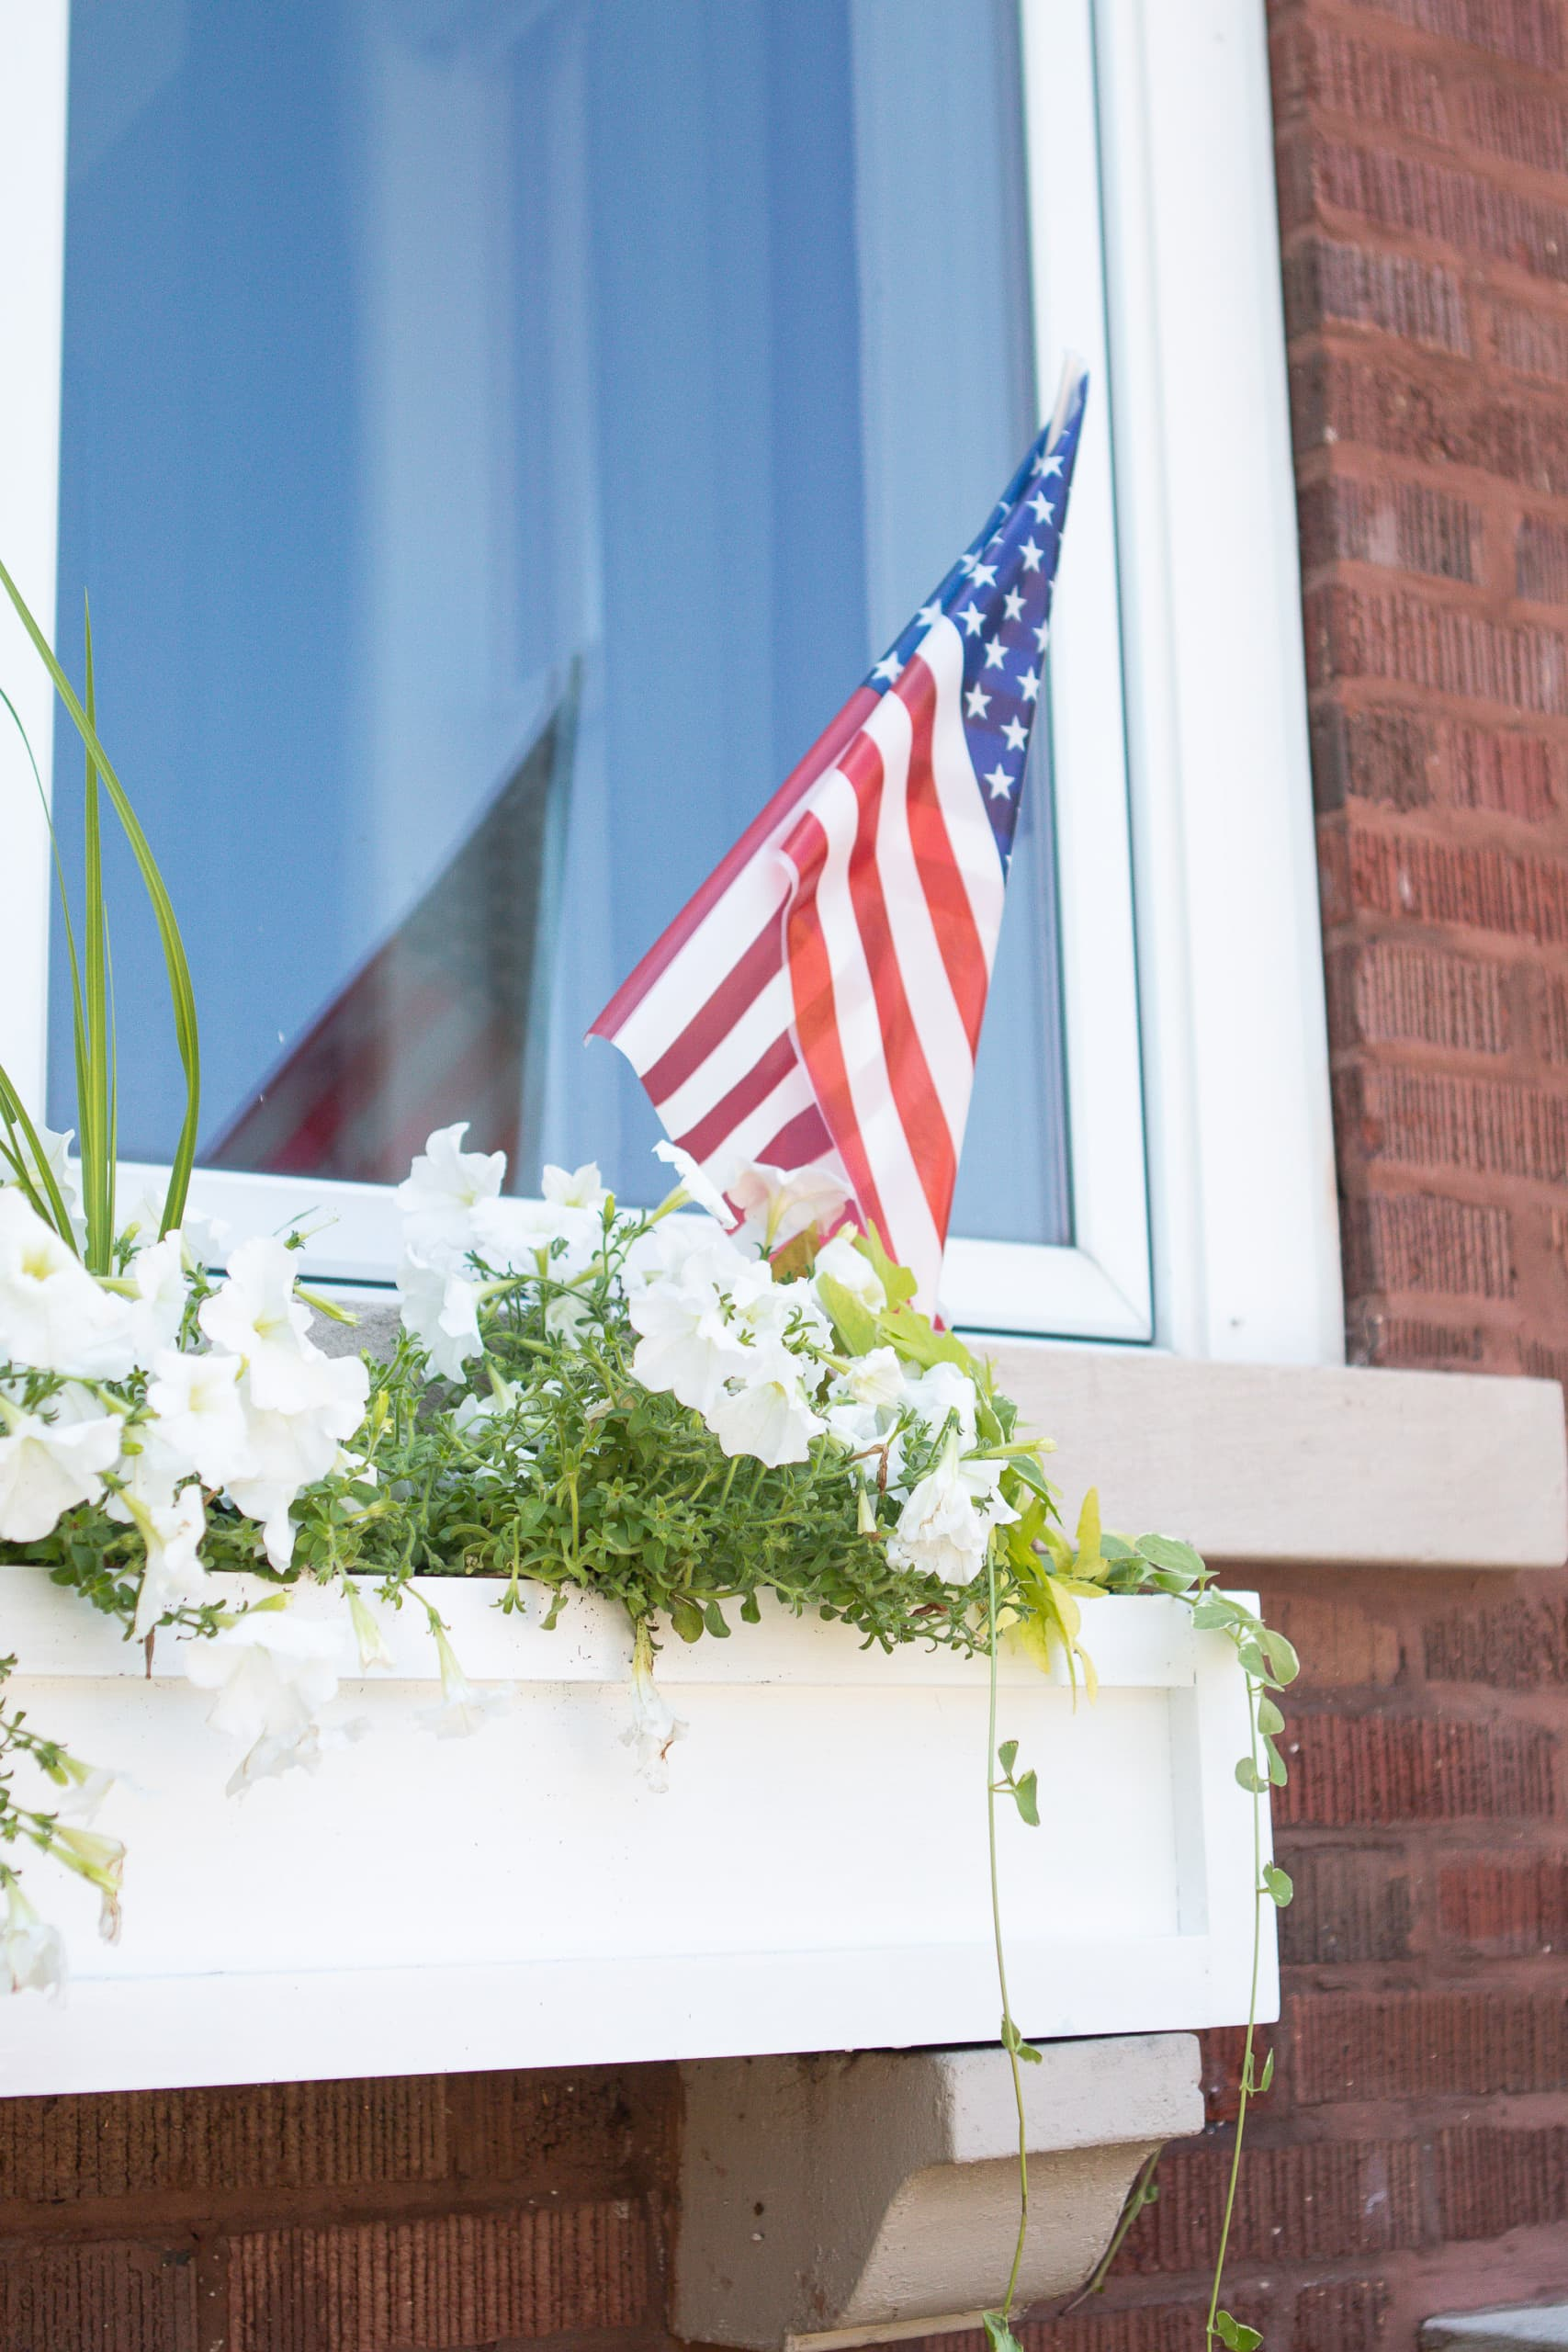 American flag in a window box